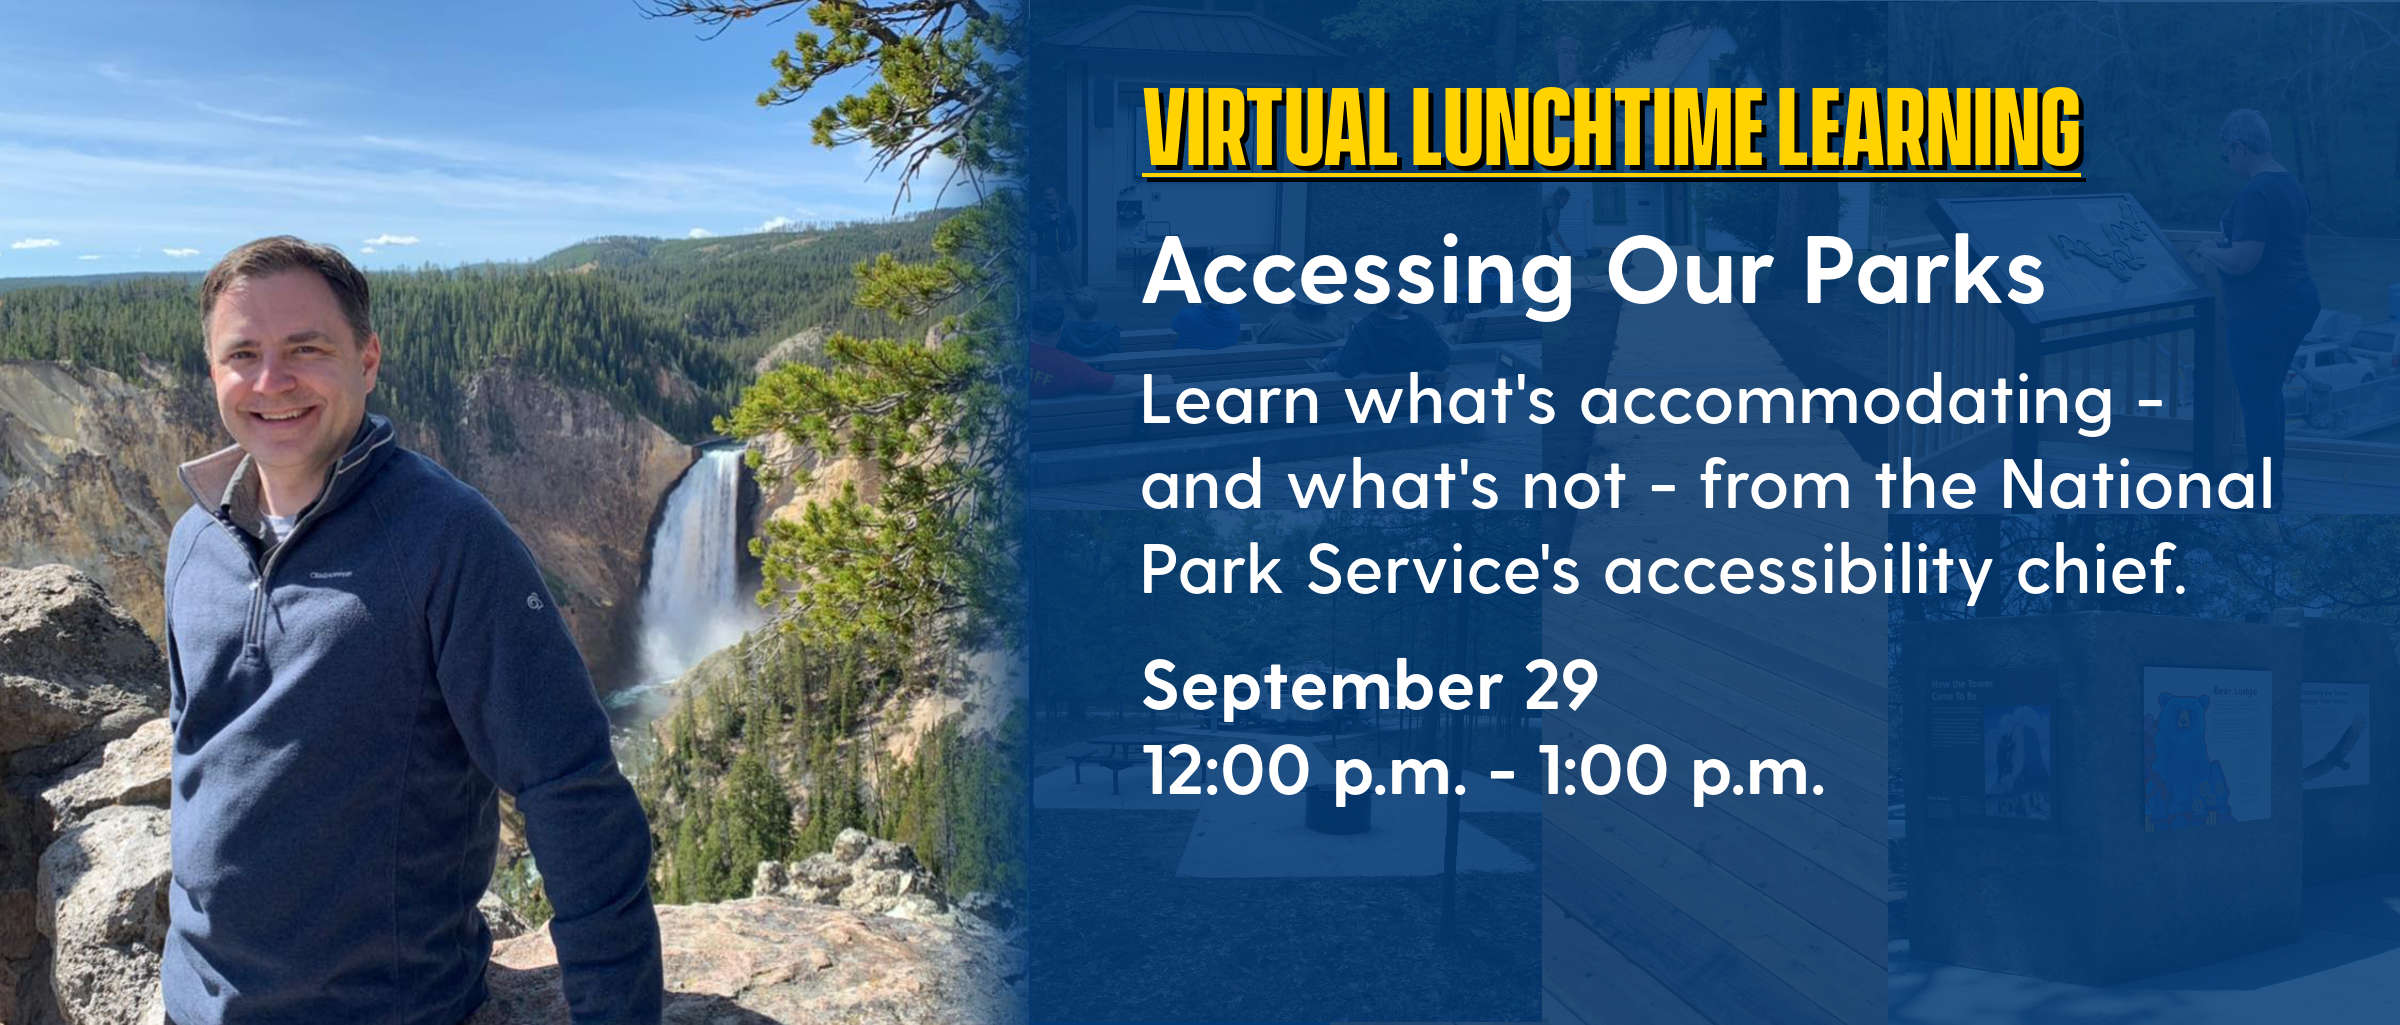 Virtual Learning: Accessing Our Parks September 29 12 pm to 1 pm